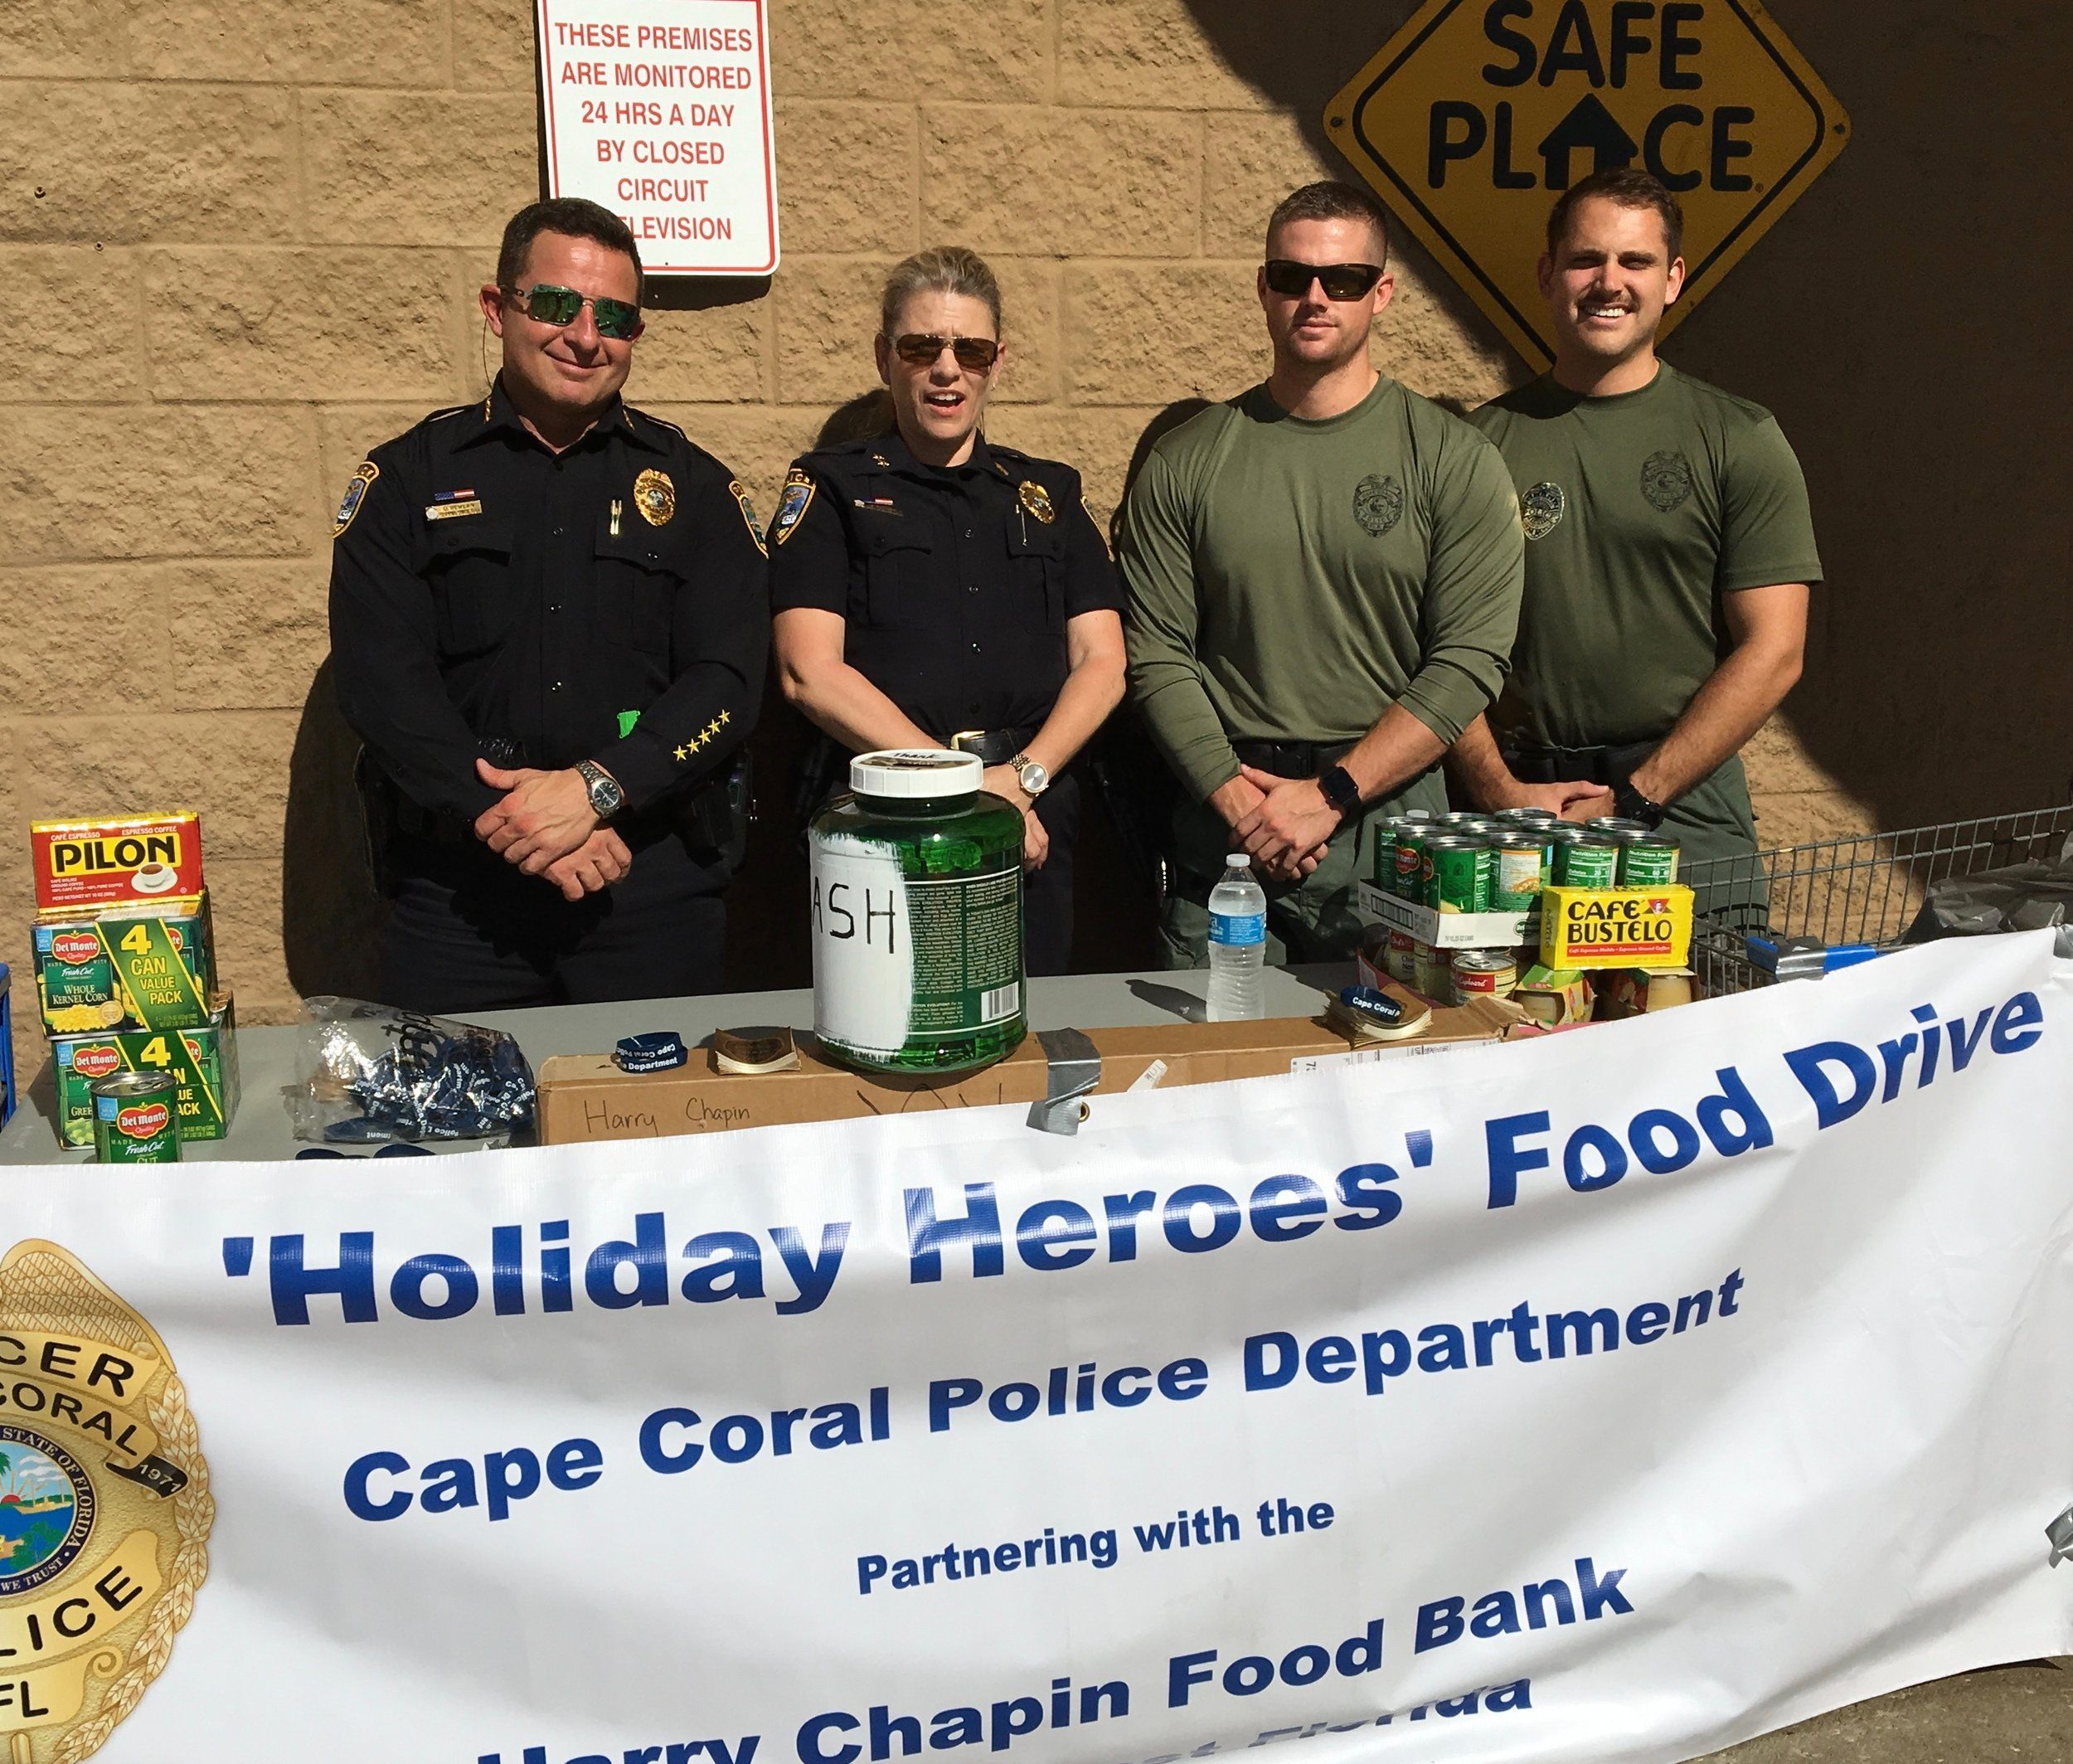 Results Of Cape Coral Police S 6th Annual Holiday Heroes Food Drive For The Harry Chapin Food Bank Cape Coral Police Department Food Bank Chapin Food Drive